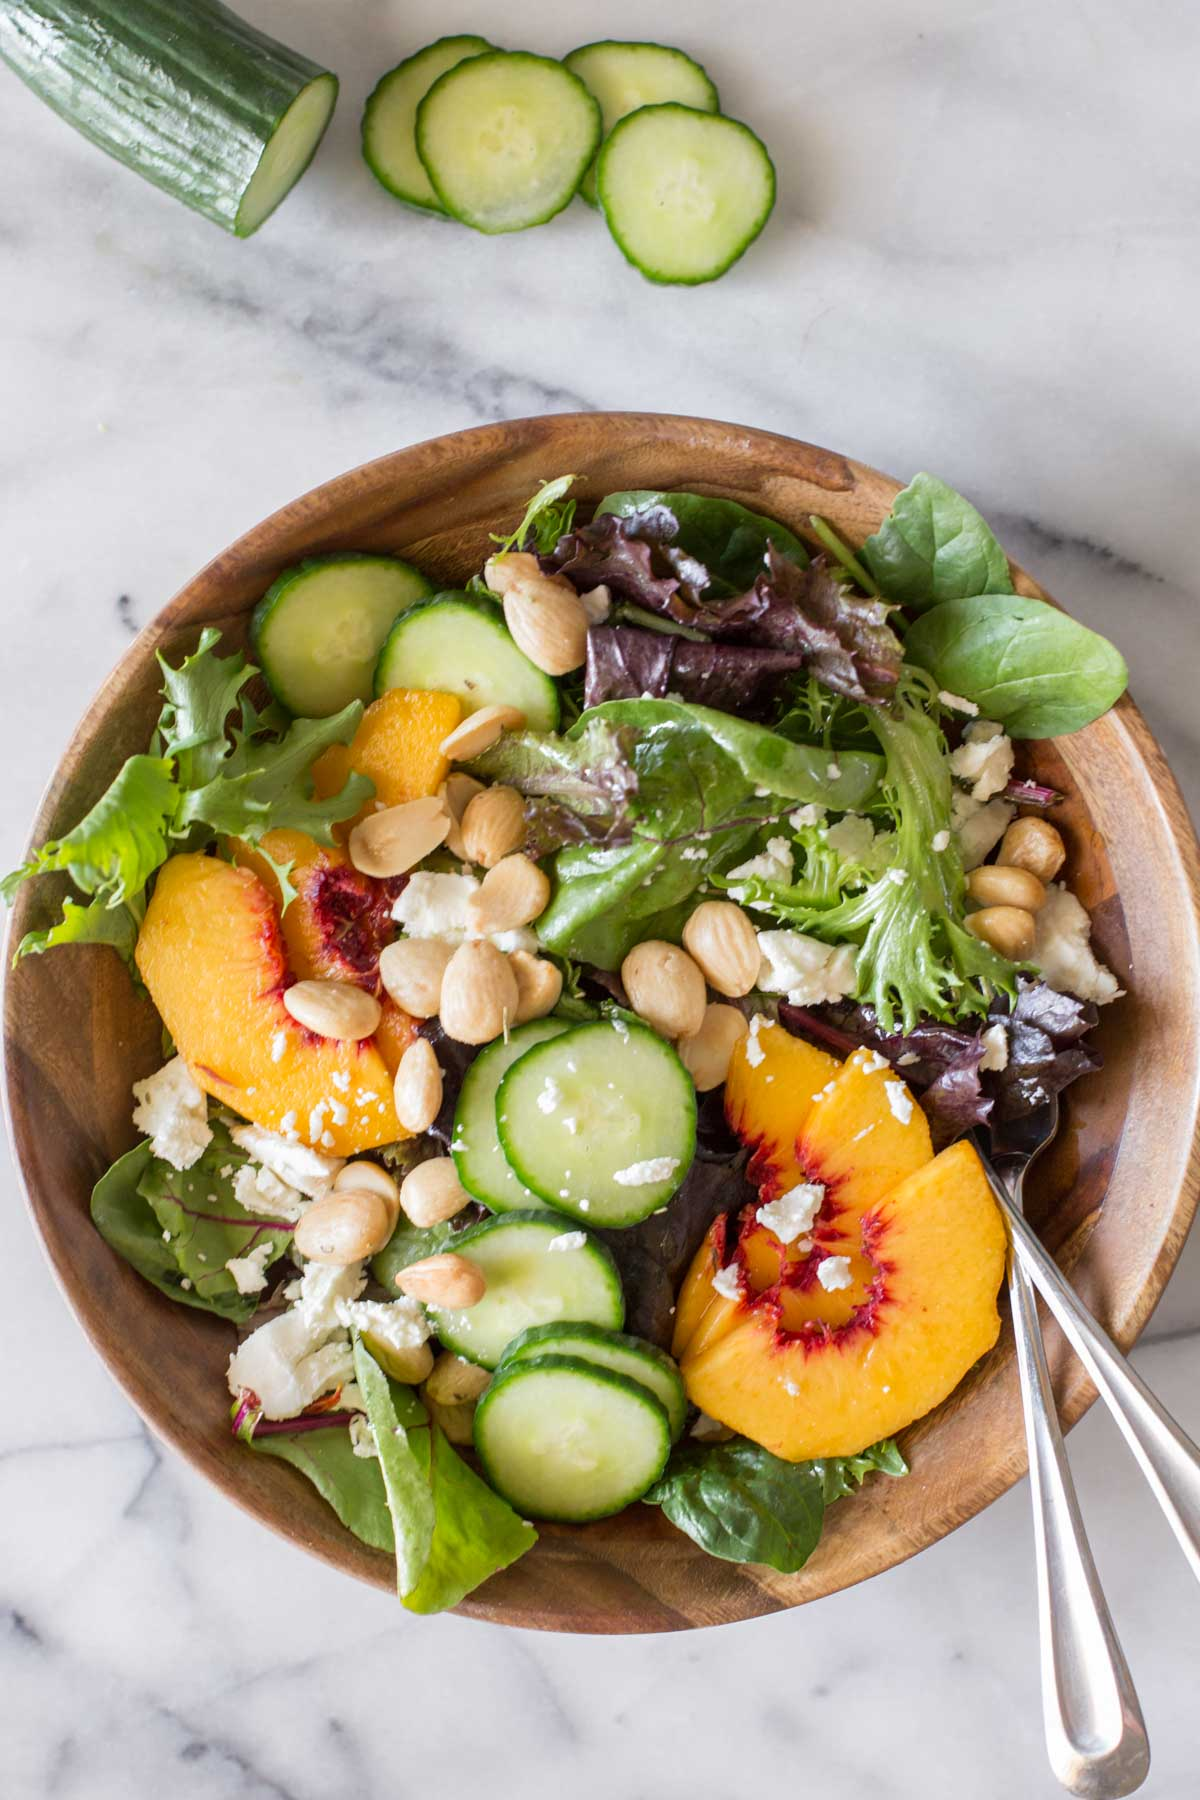 Overhead shot of Summer Peach Salad in a wood bowl on a marble background with a sliced cucumber next to the bowl.